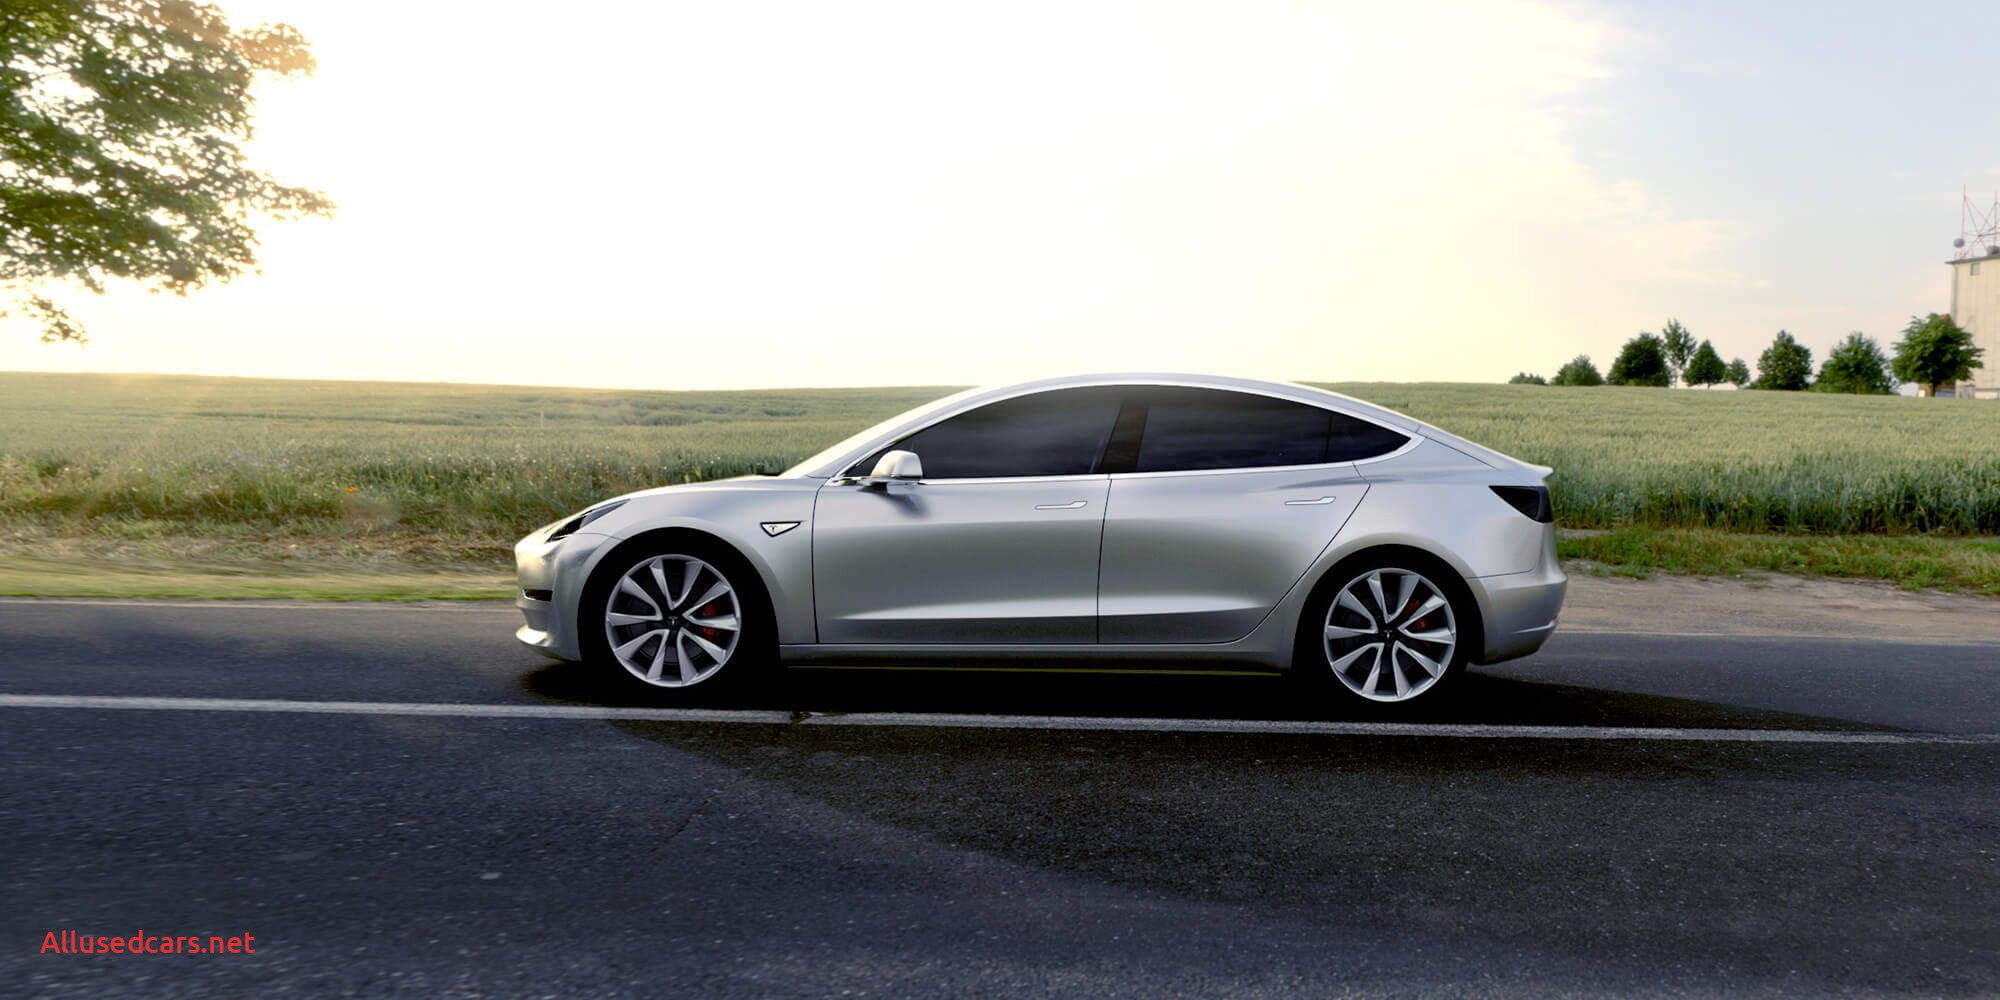 Tesla who Makes the Car Elegant the New $35k Tesla Model 3 Finally Makes Electric Cars Cool